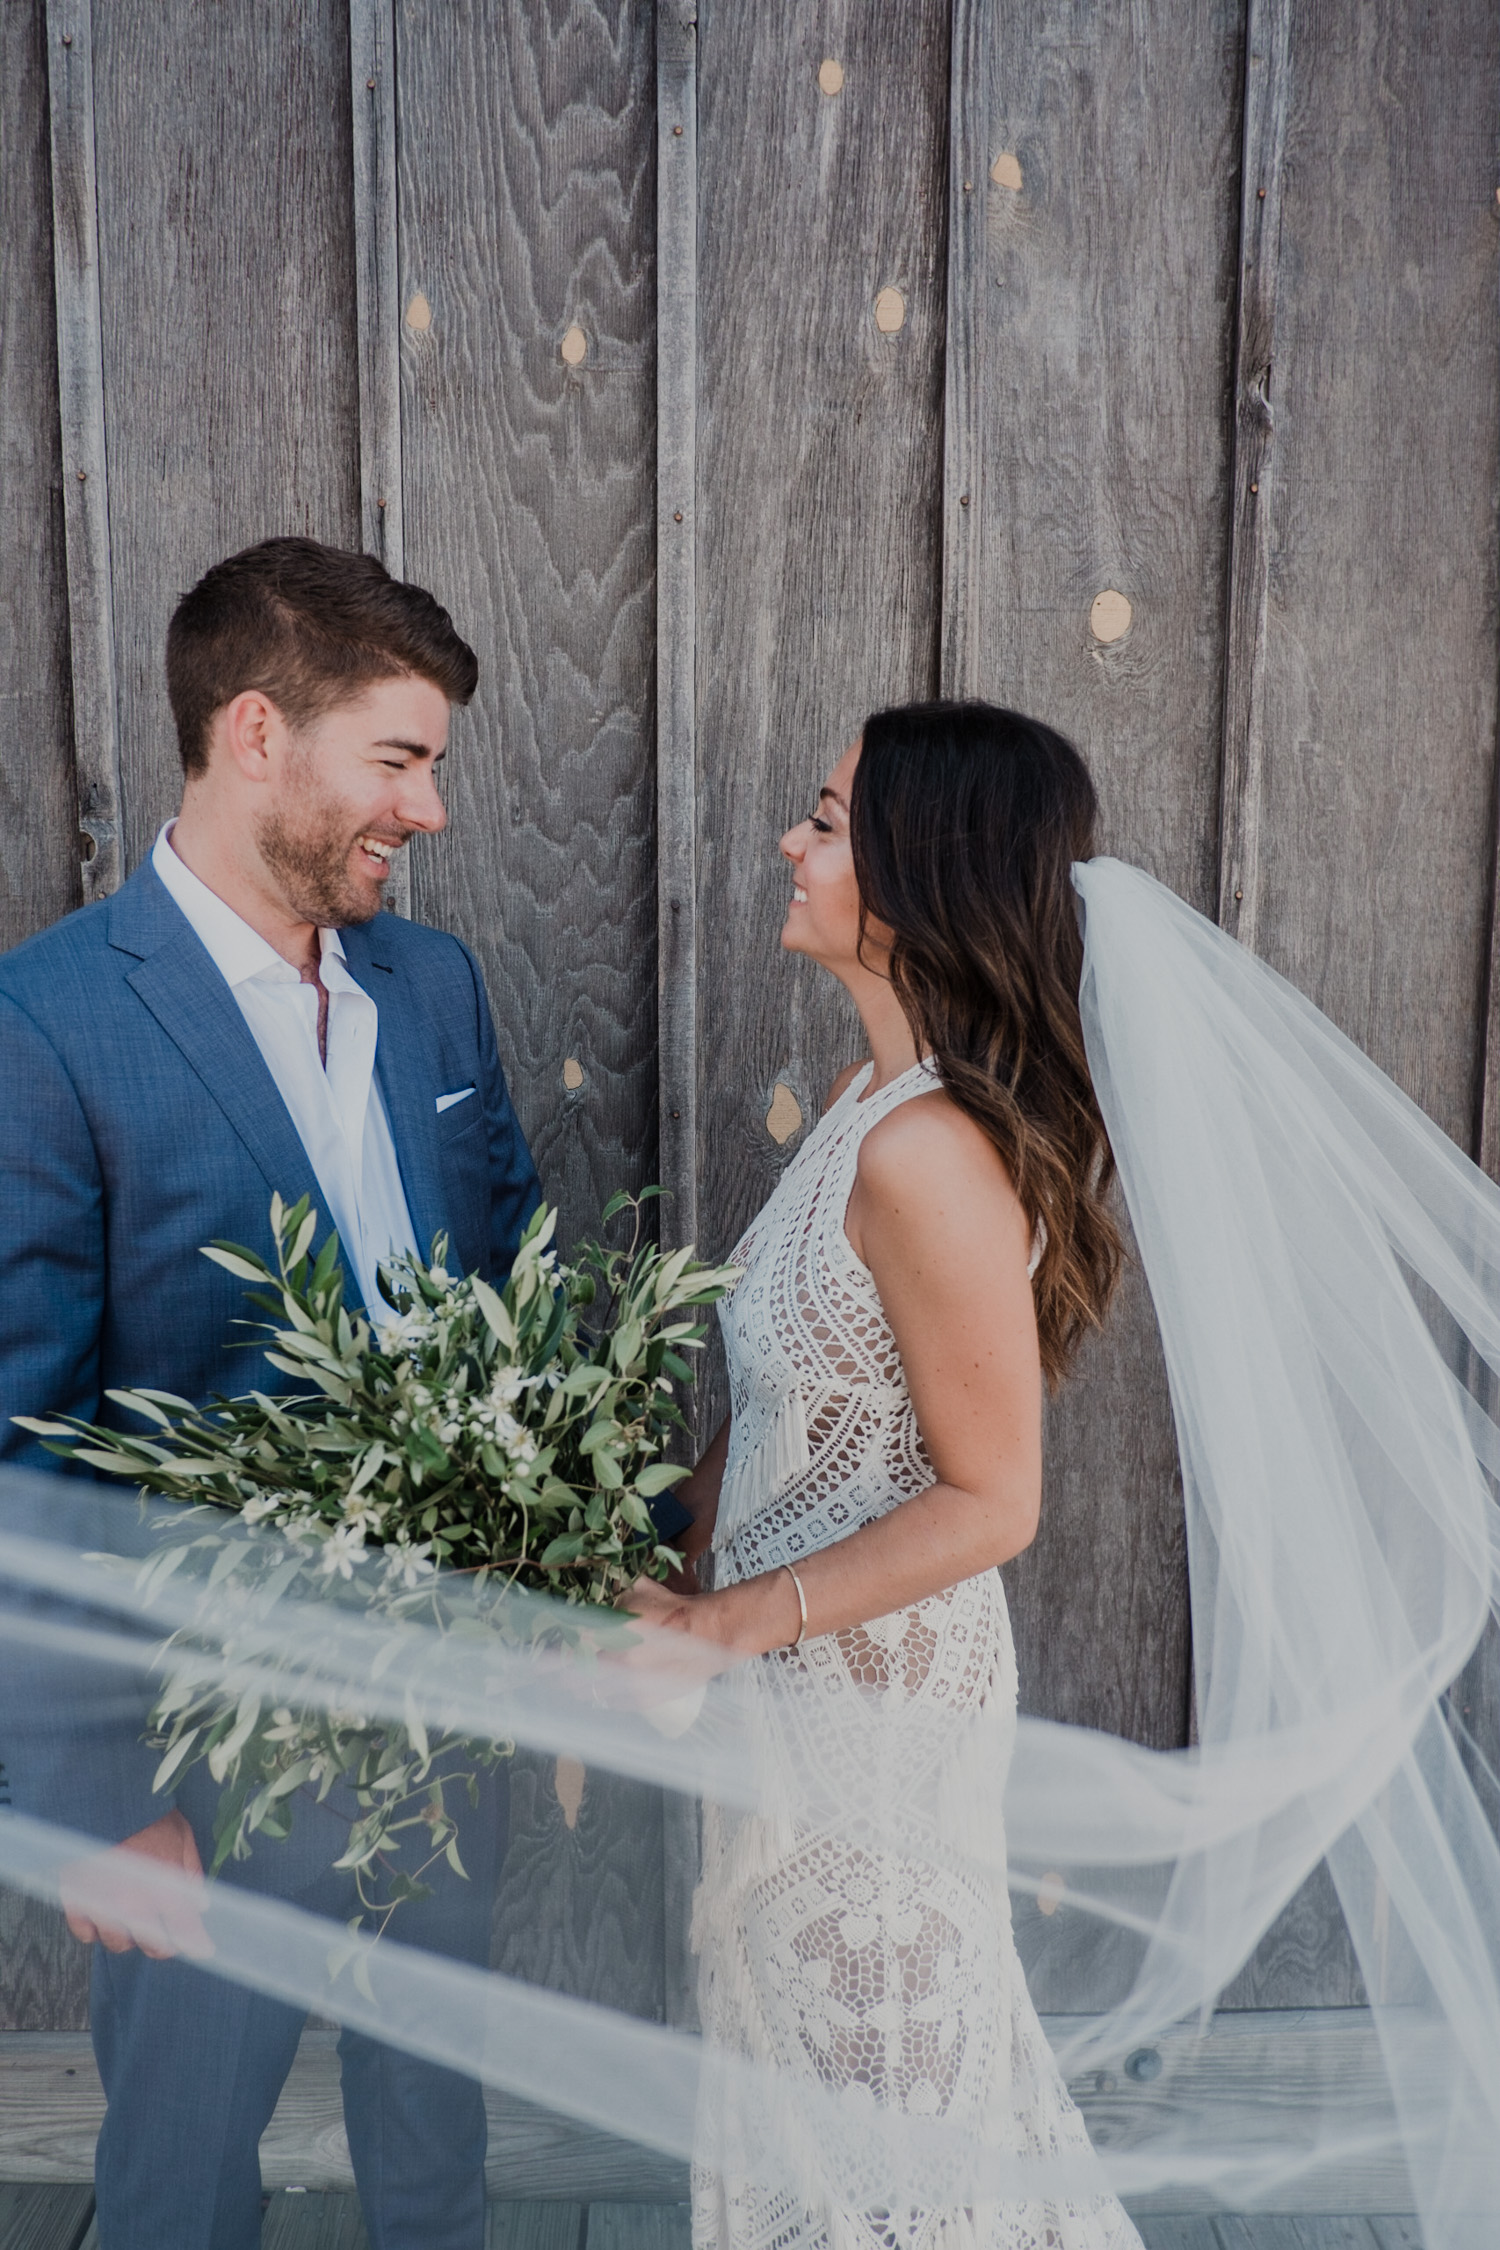 bride and groom check each other out during first look with bride's veil blowing in the wind